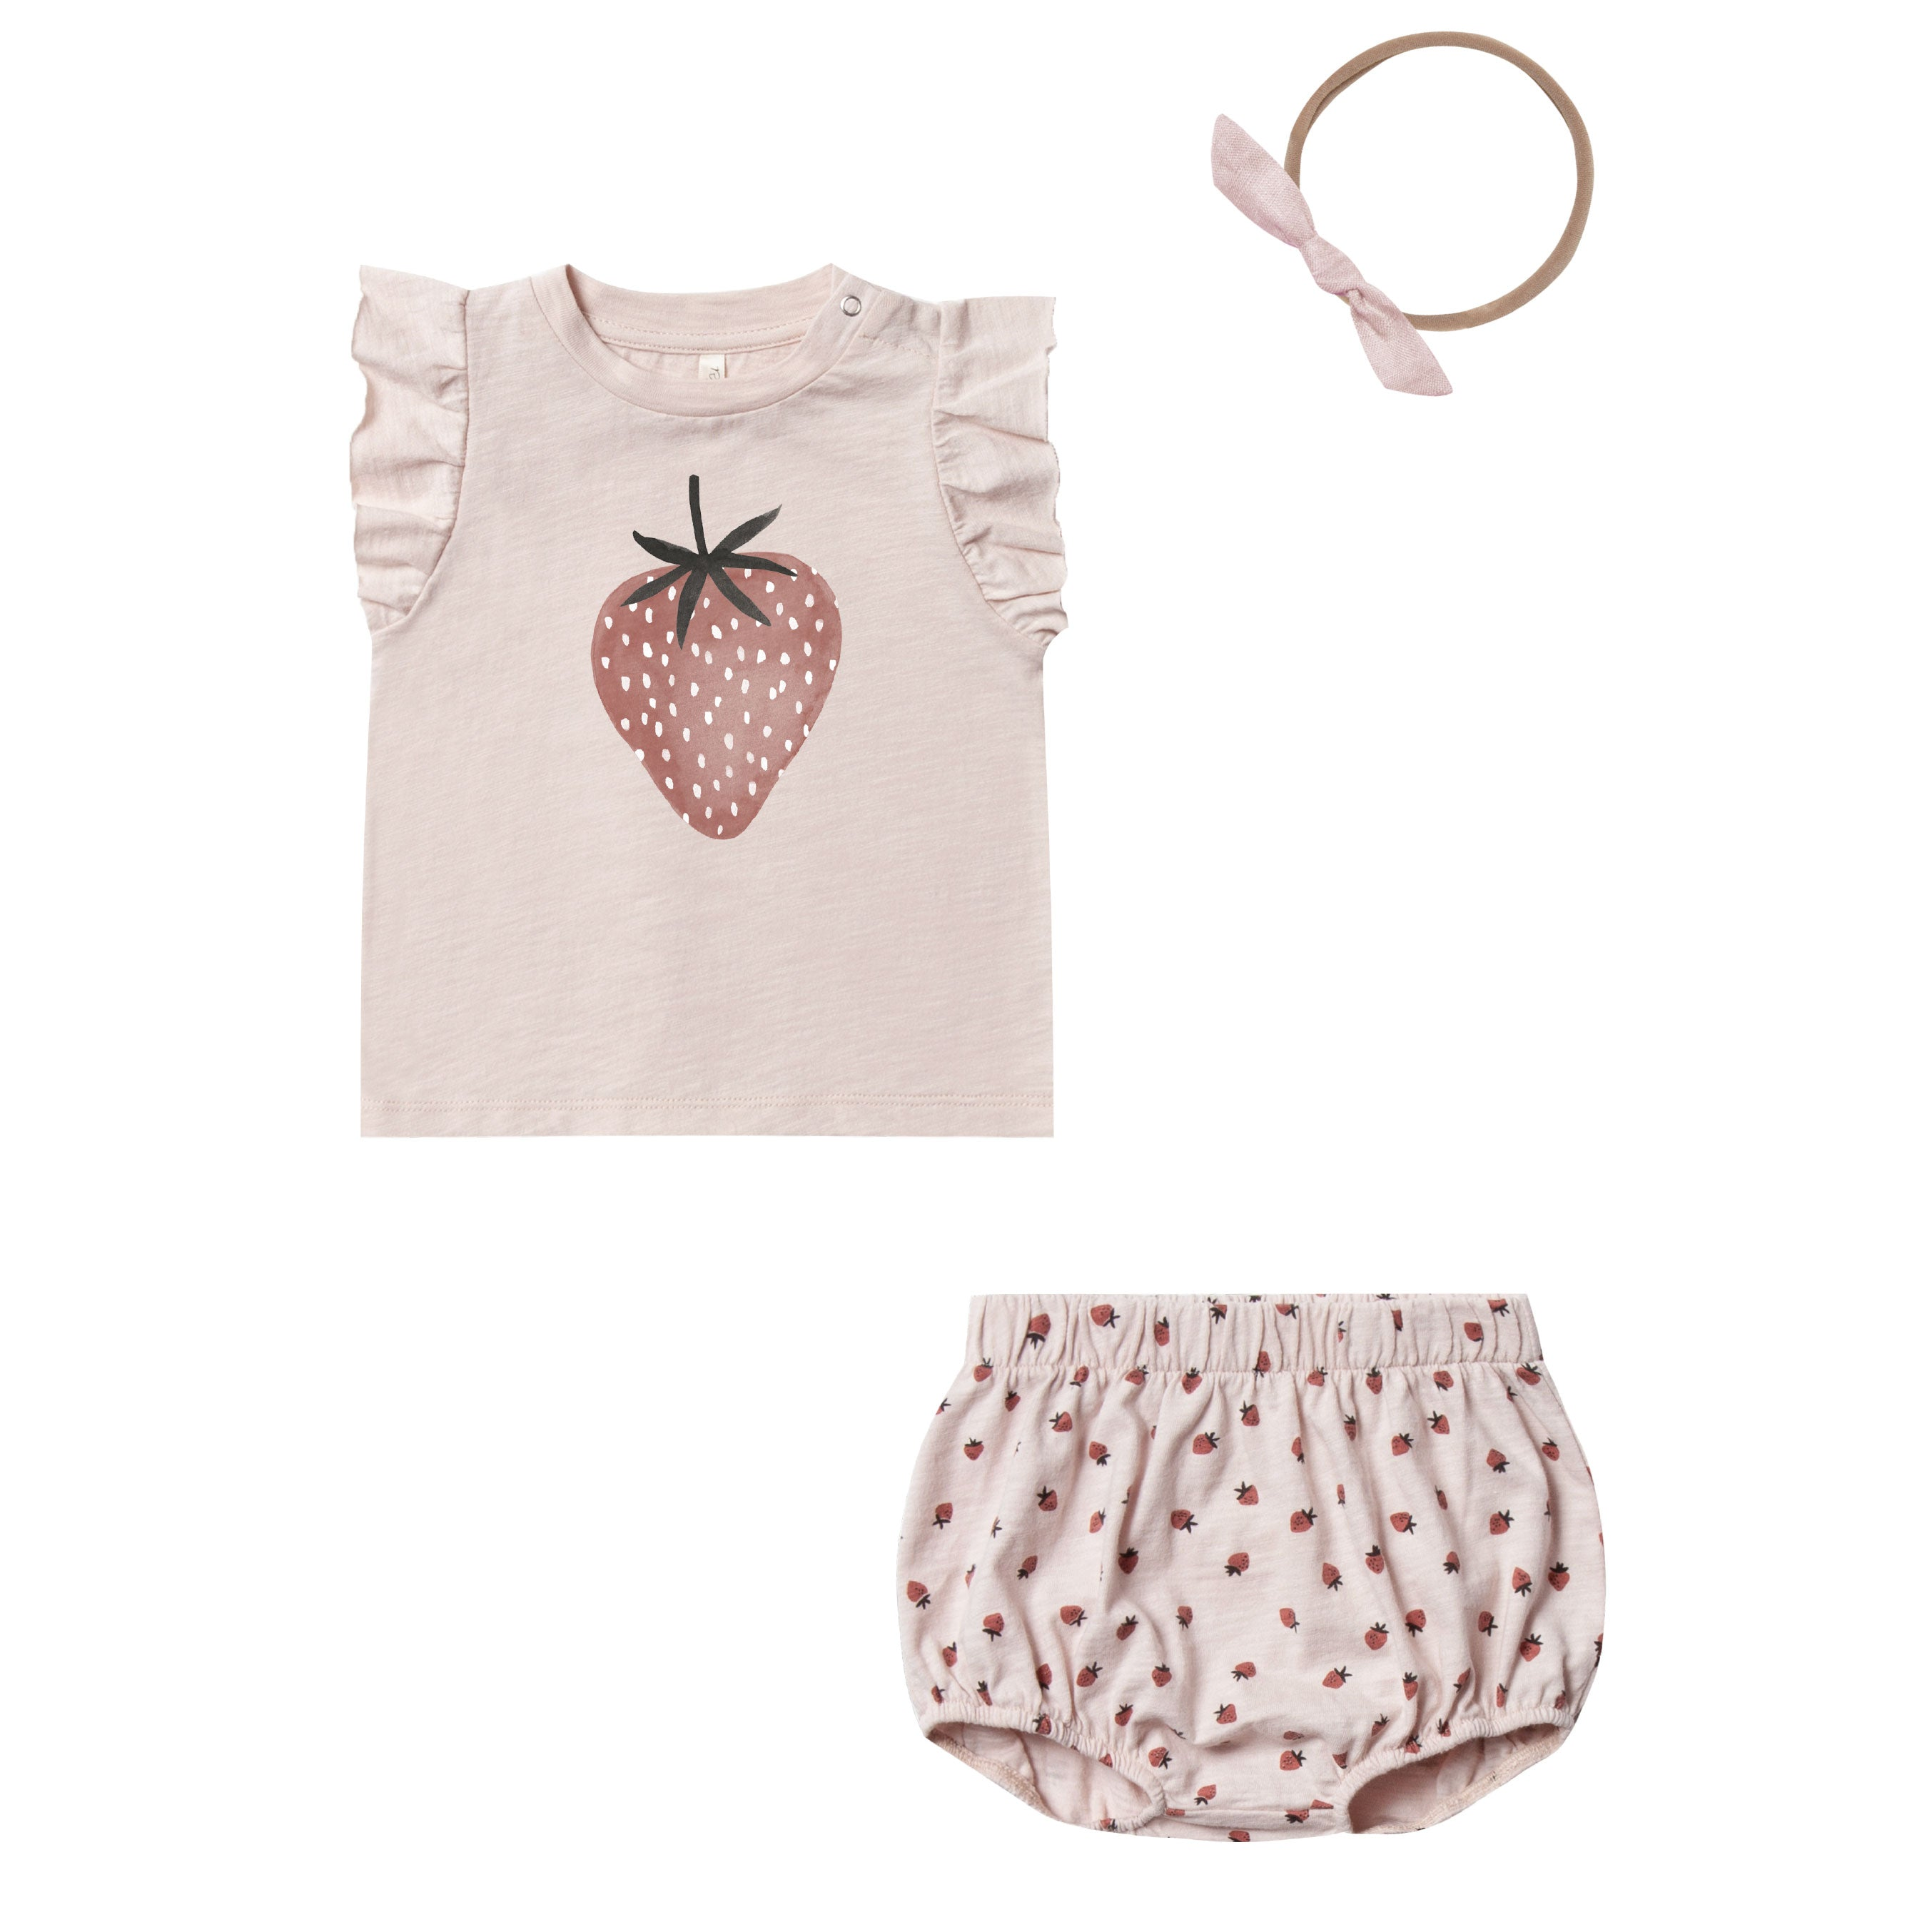 Rylee and Cru Baby Girl top, bloomer and headband with strawberry print, perfect addition to your BYOB (Build Your Own Basket)